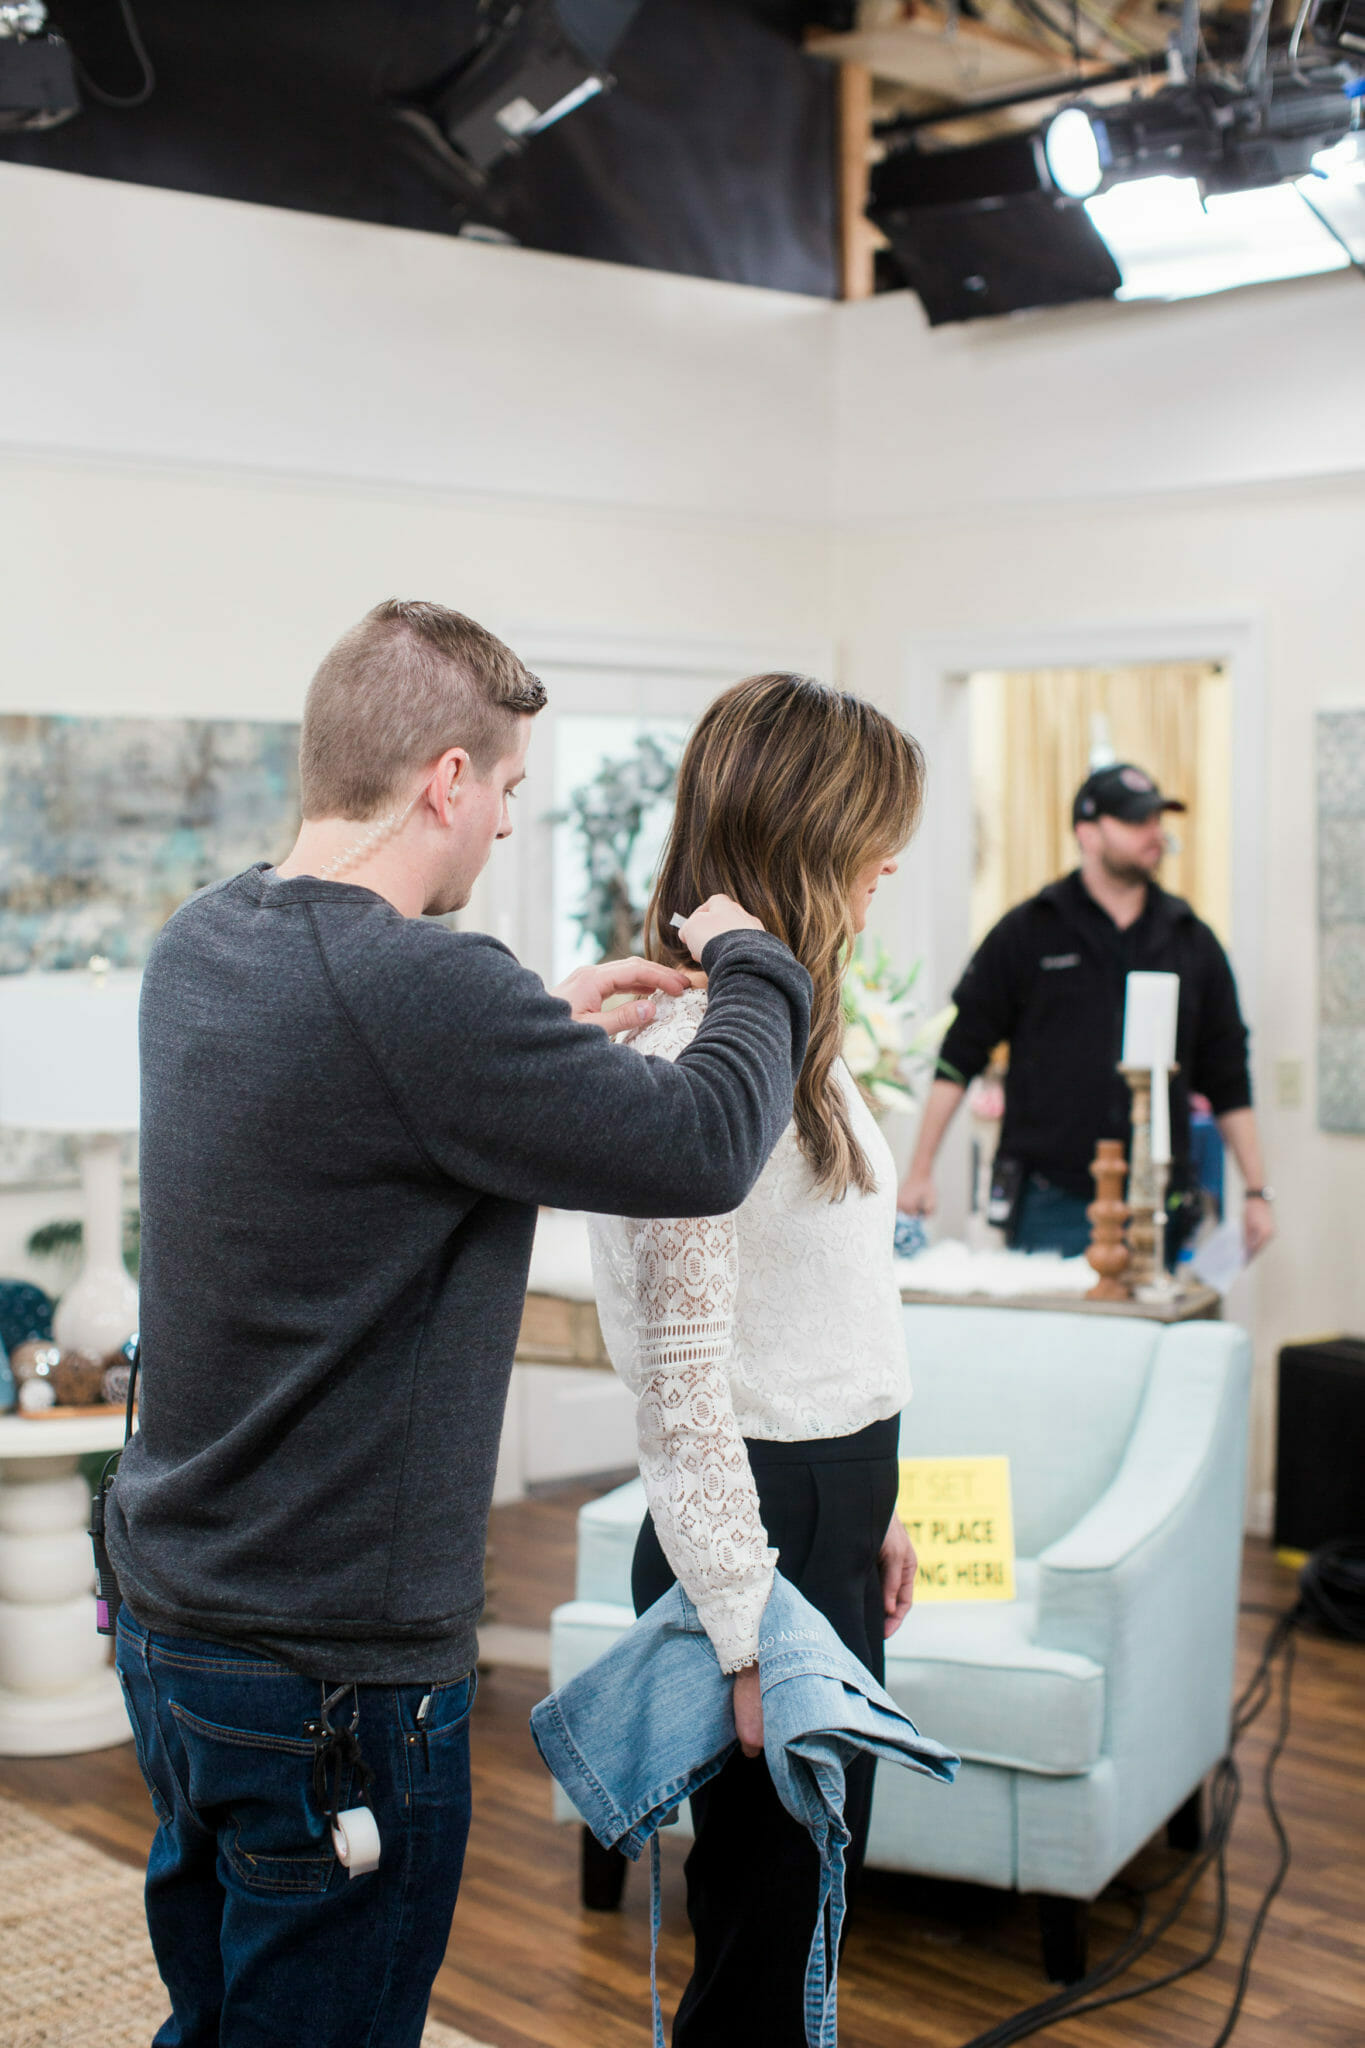 Behind the Scenes at Hallmark Home and Family || JennyCookies.com #hallmark #behindthescenes #jennycookies